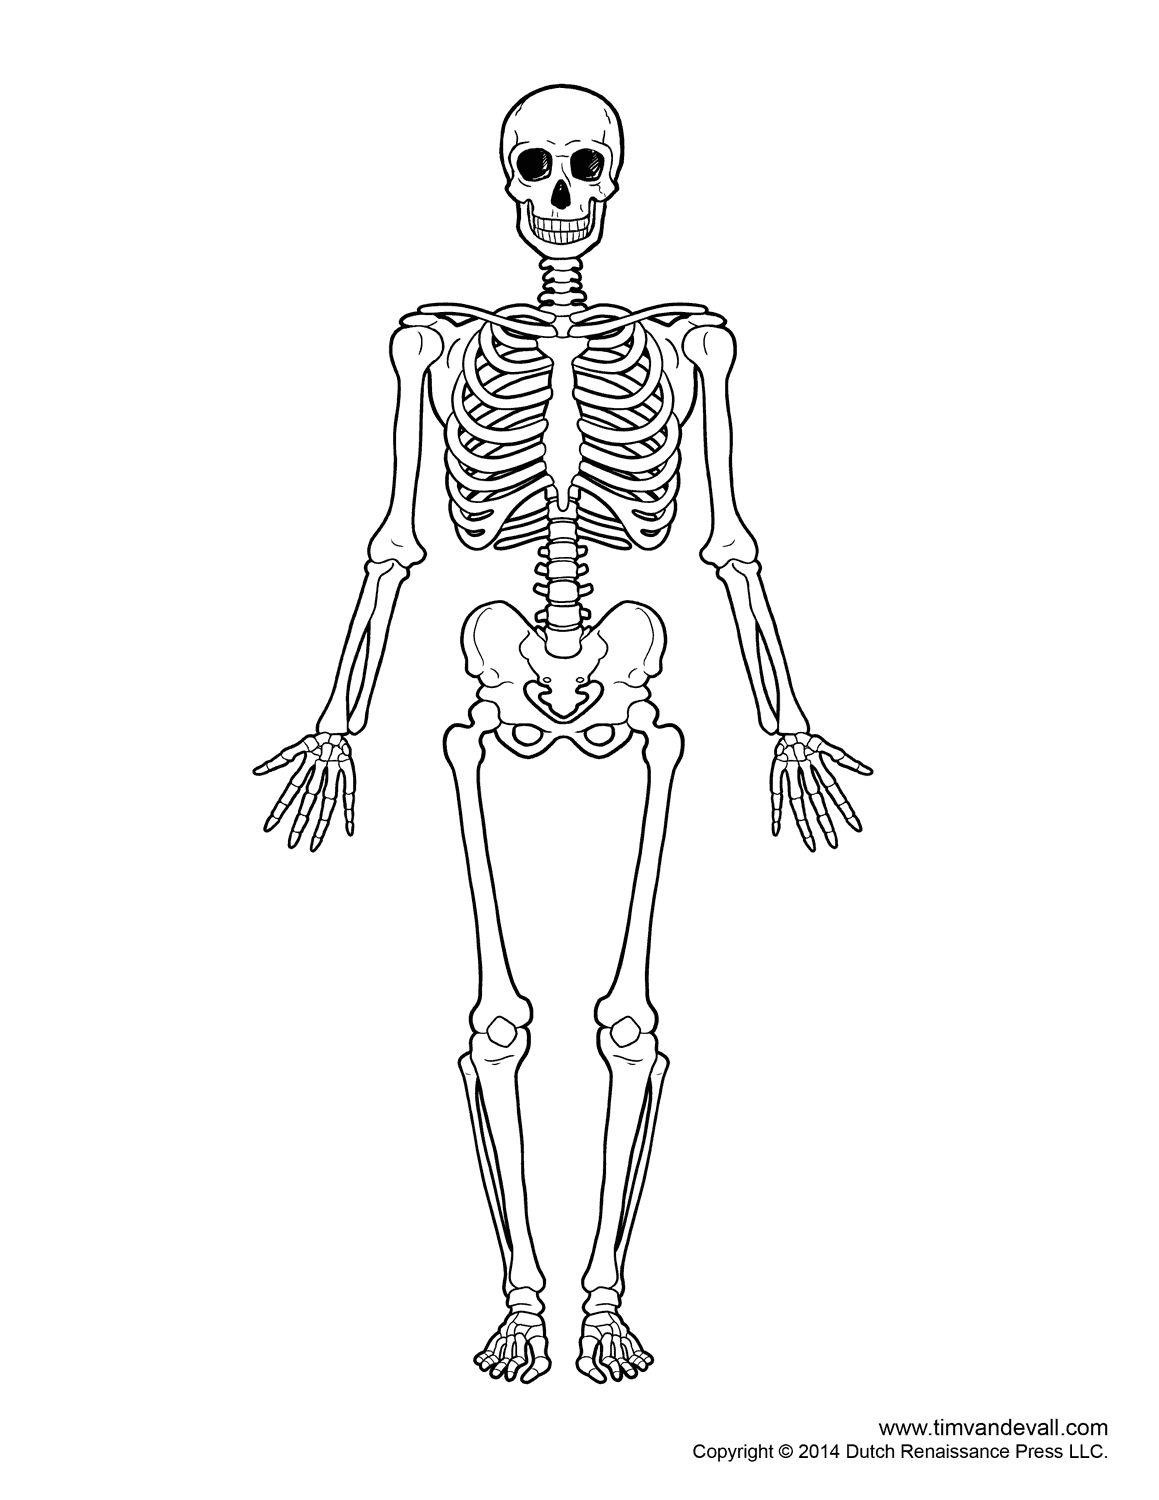 How To Draw A Skelton Diagram Of Human Skeleton